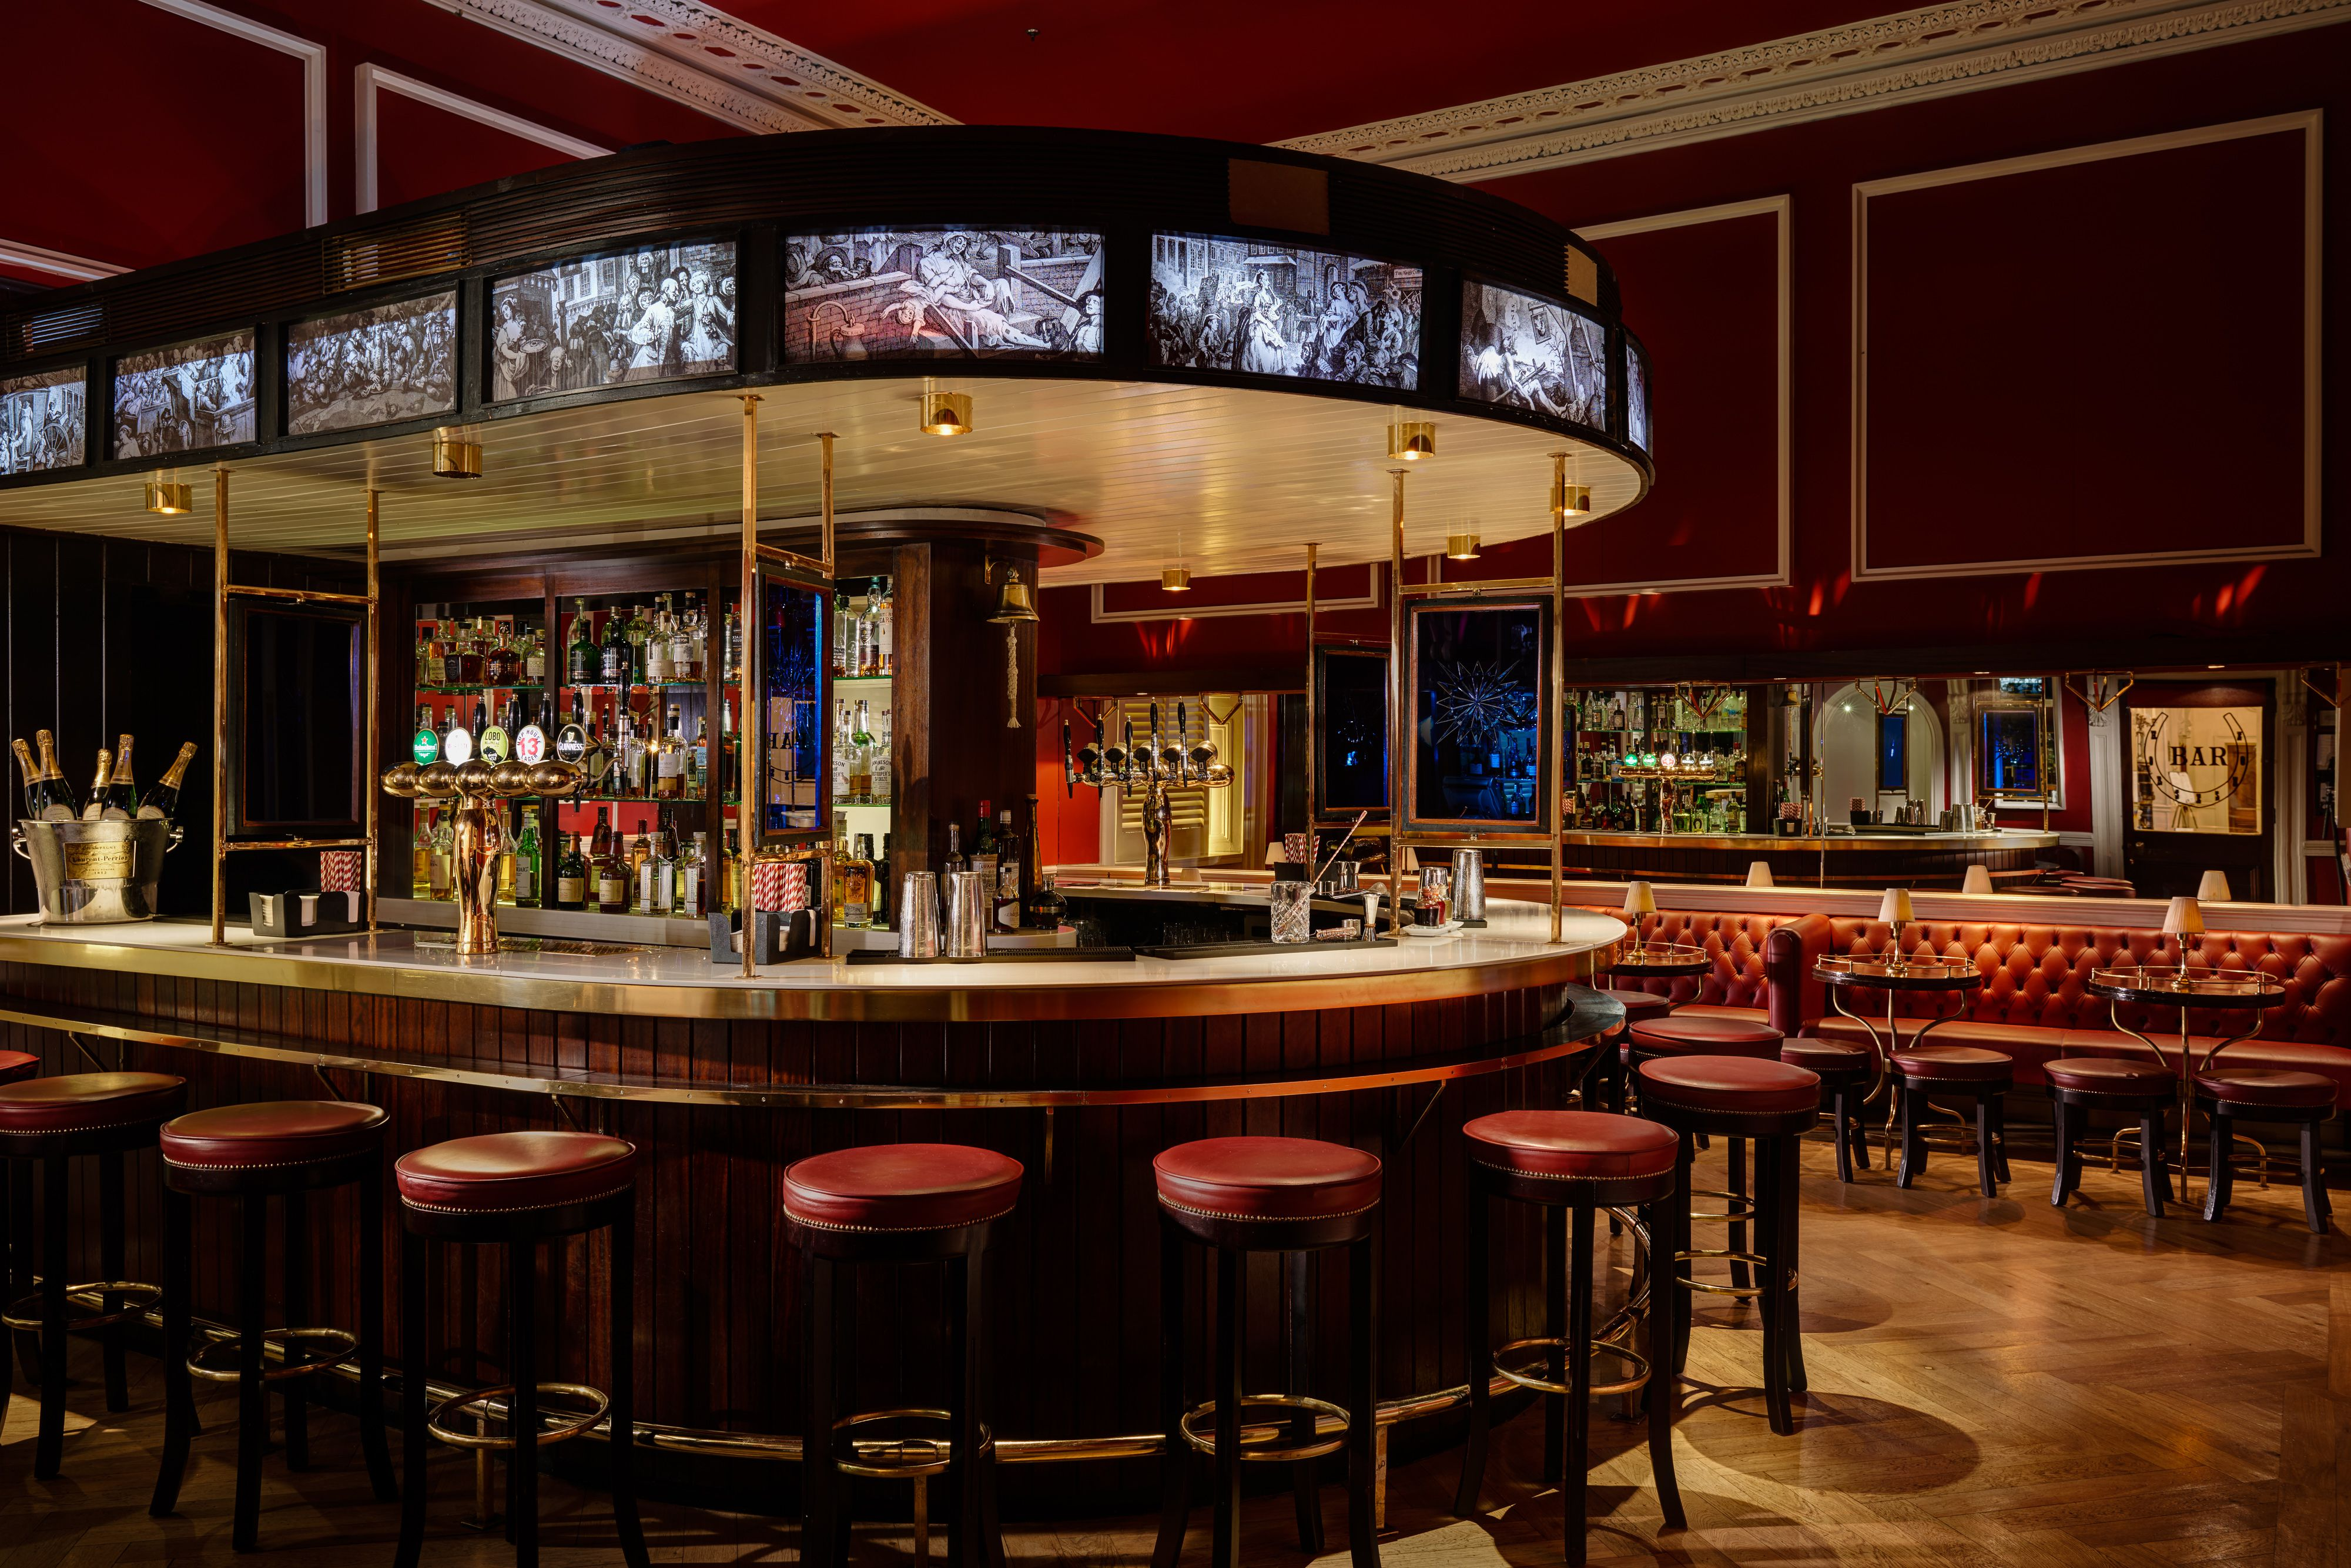 The Horseshoe Bar at the Shelboure